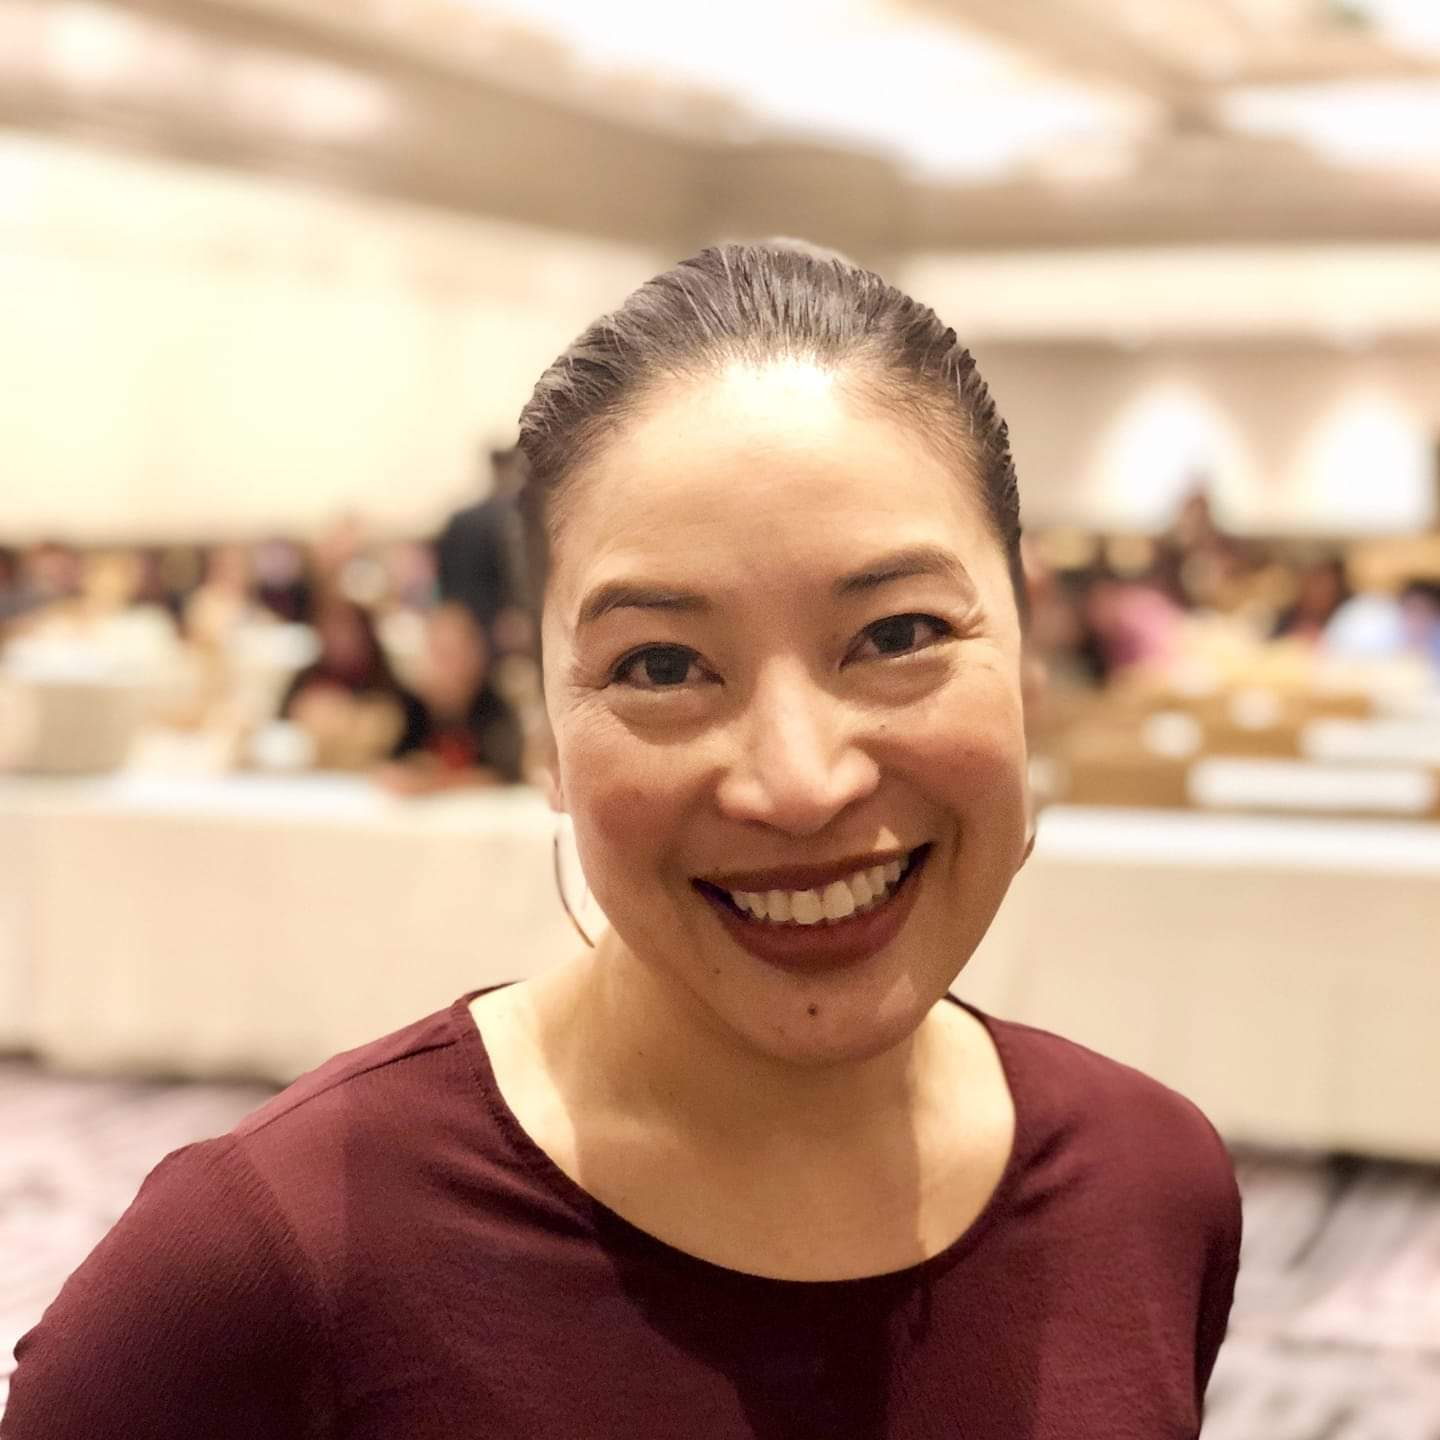 Janelle Wong - Professor of American Studies at the University of Maryland and core faculty member in its Asian American Studies Program